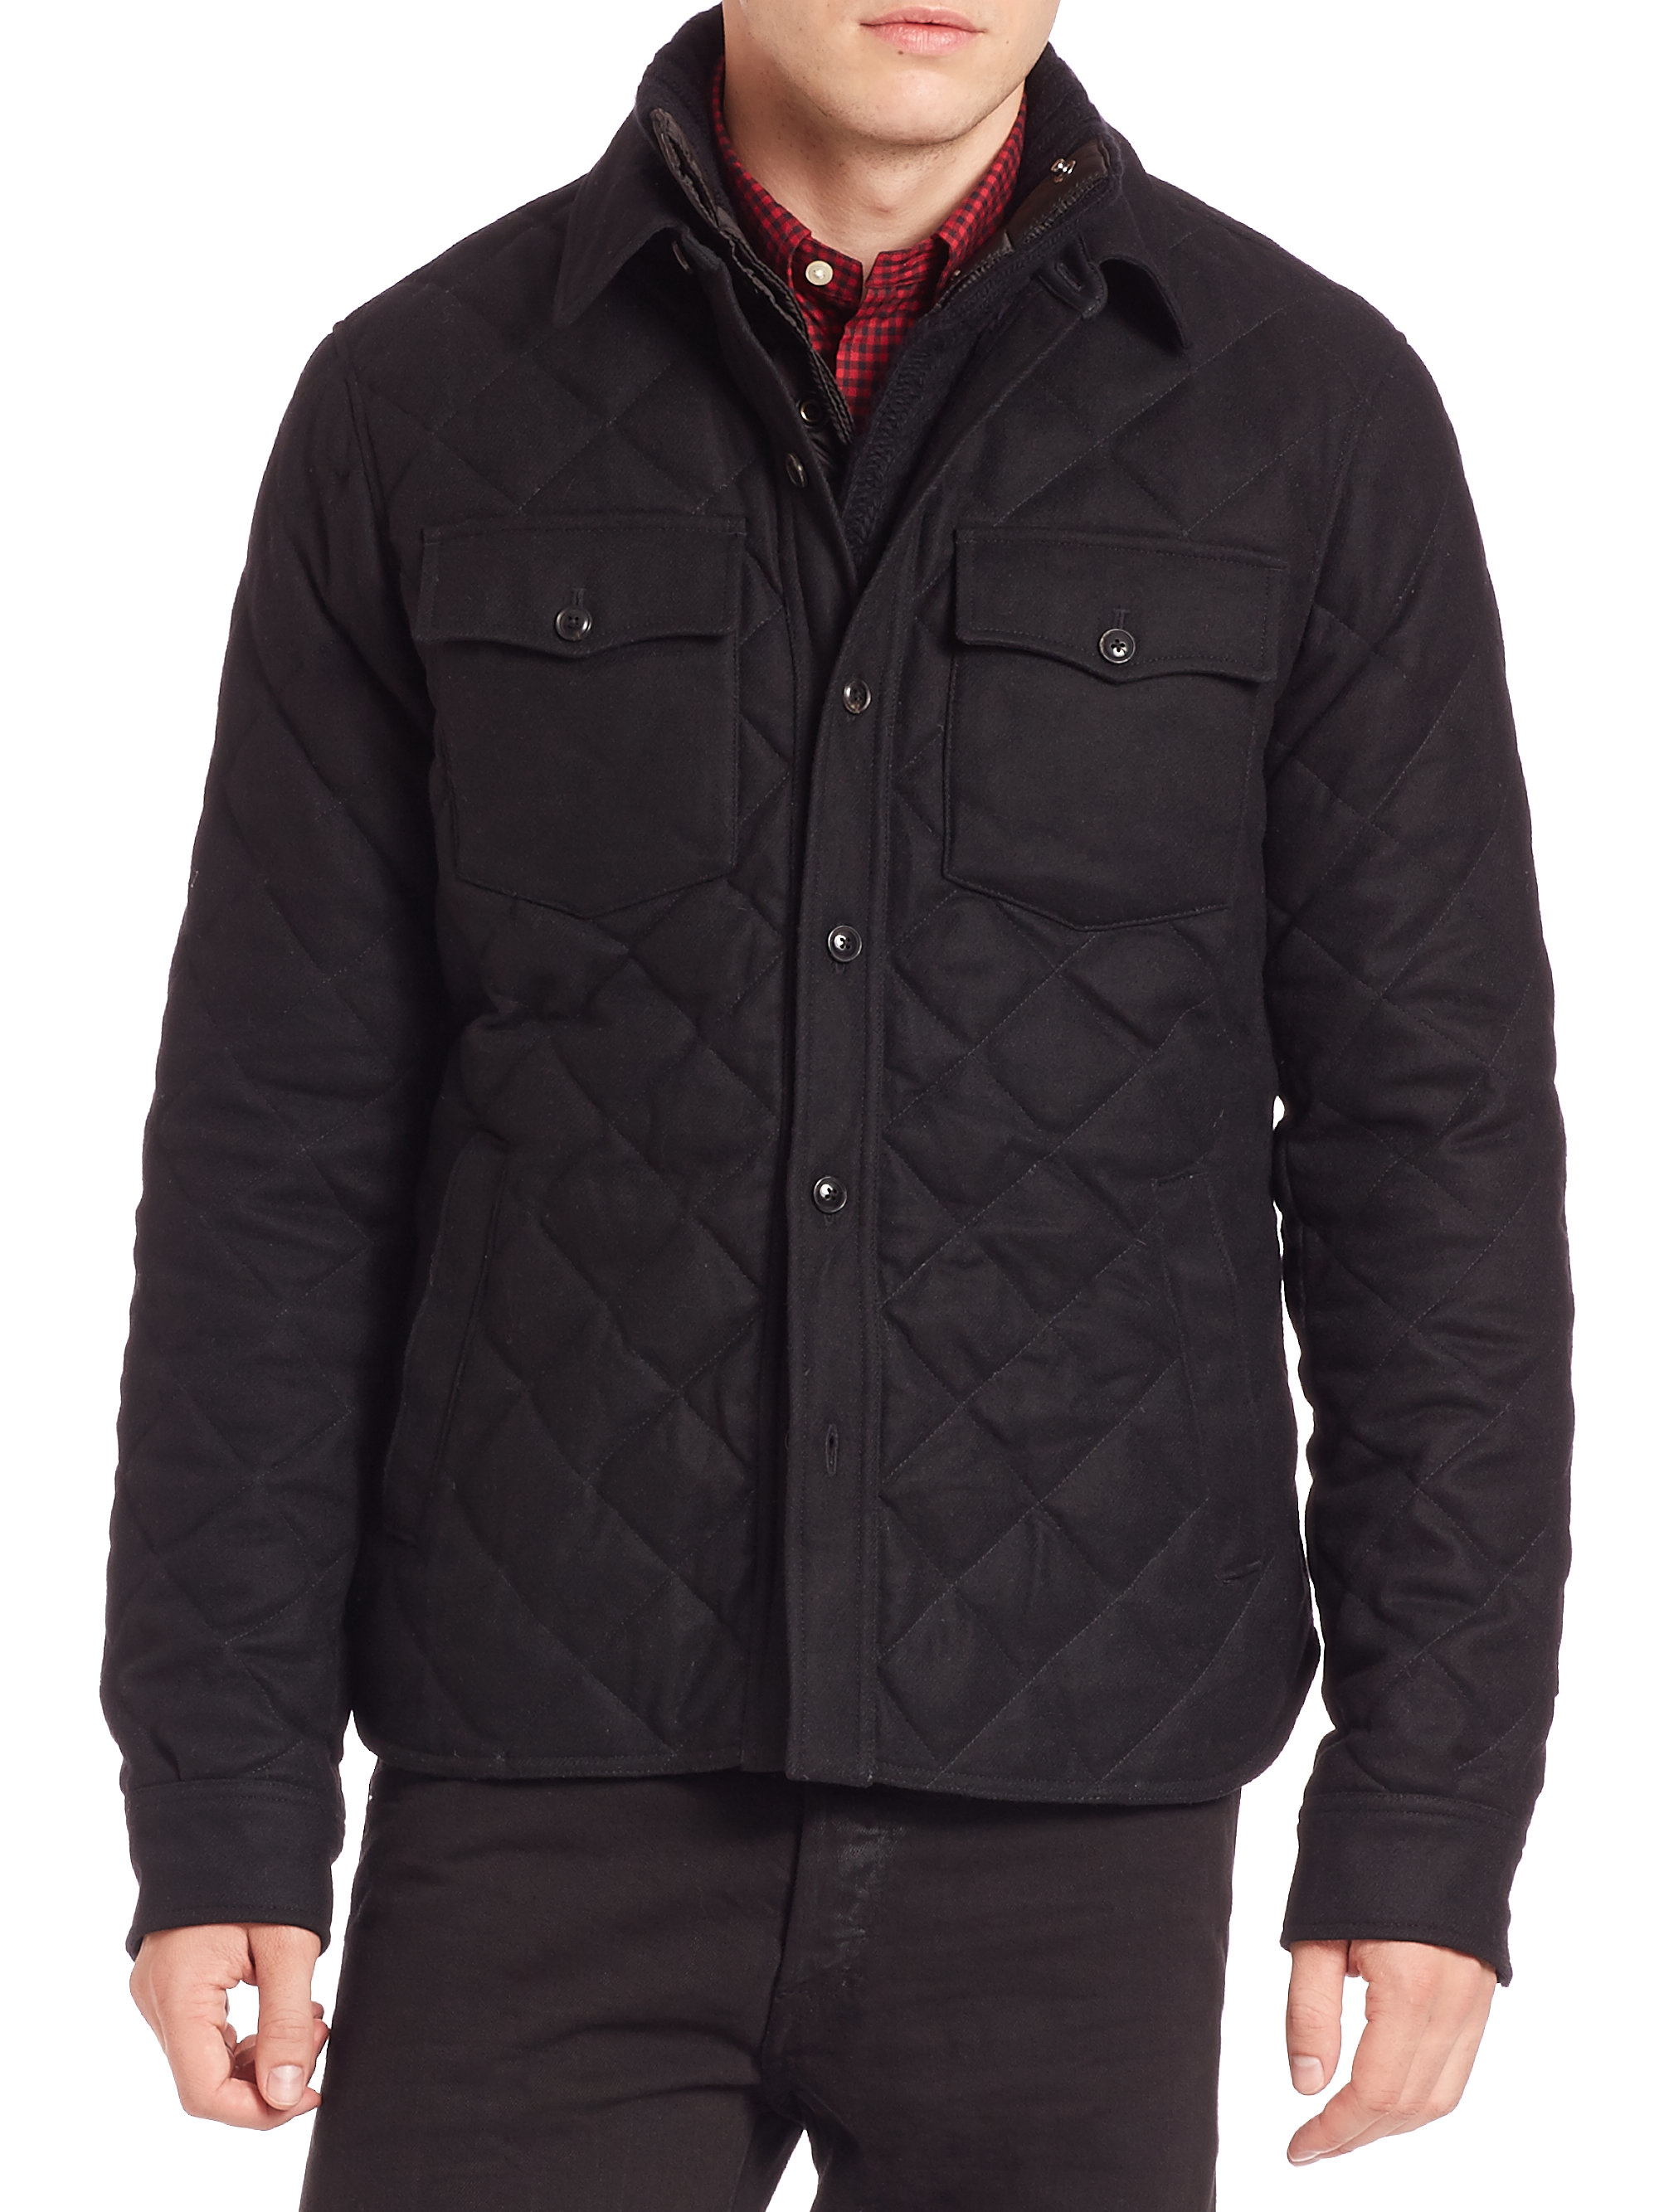 lyst polo ralph lauren quilted officer 39 s jacket in black. Black Bedroom Furniture Sets. Home Design Ideas